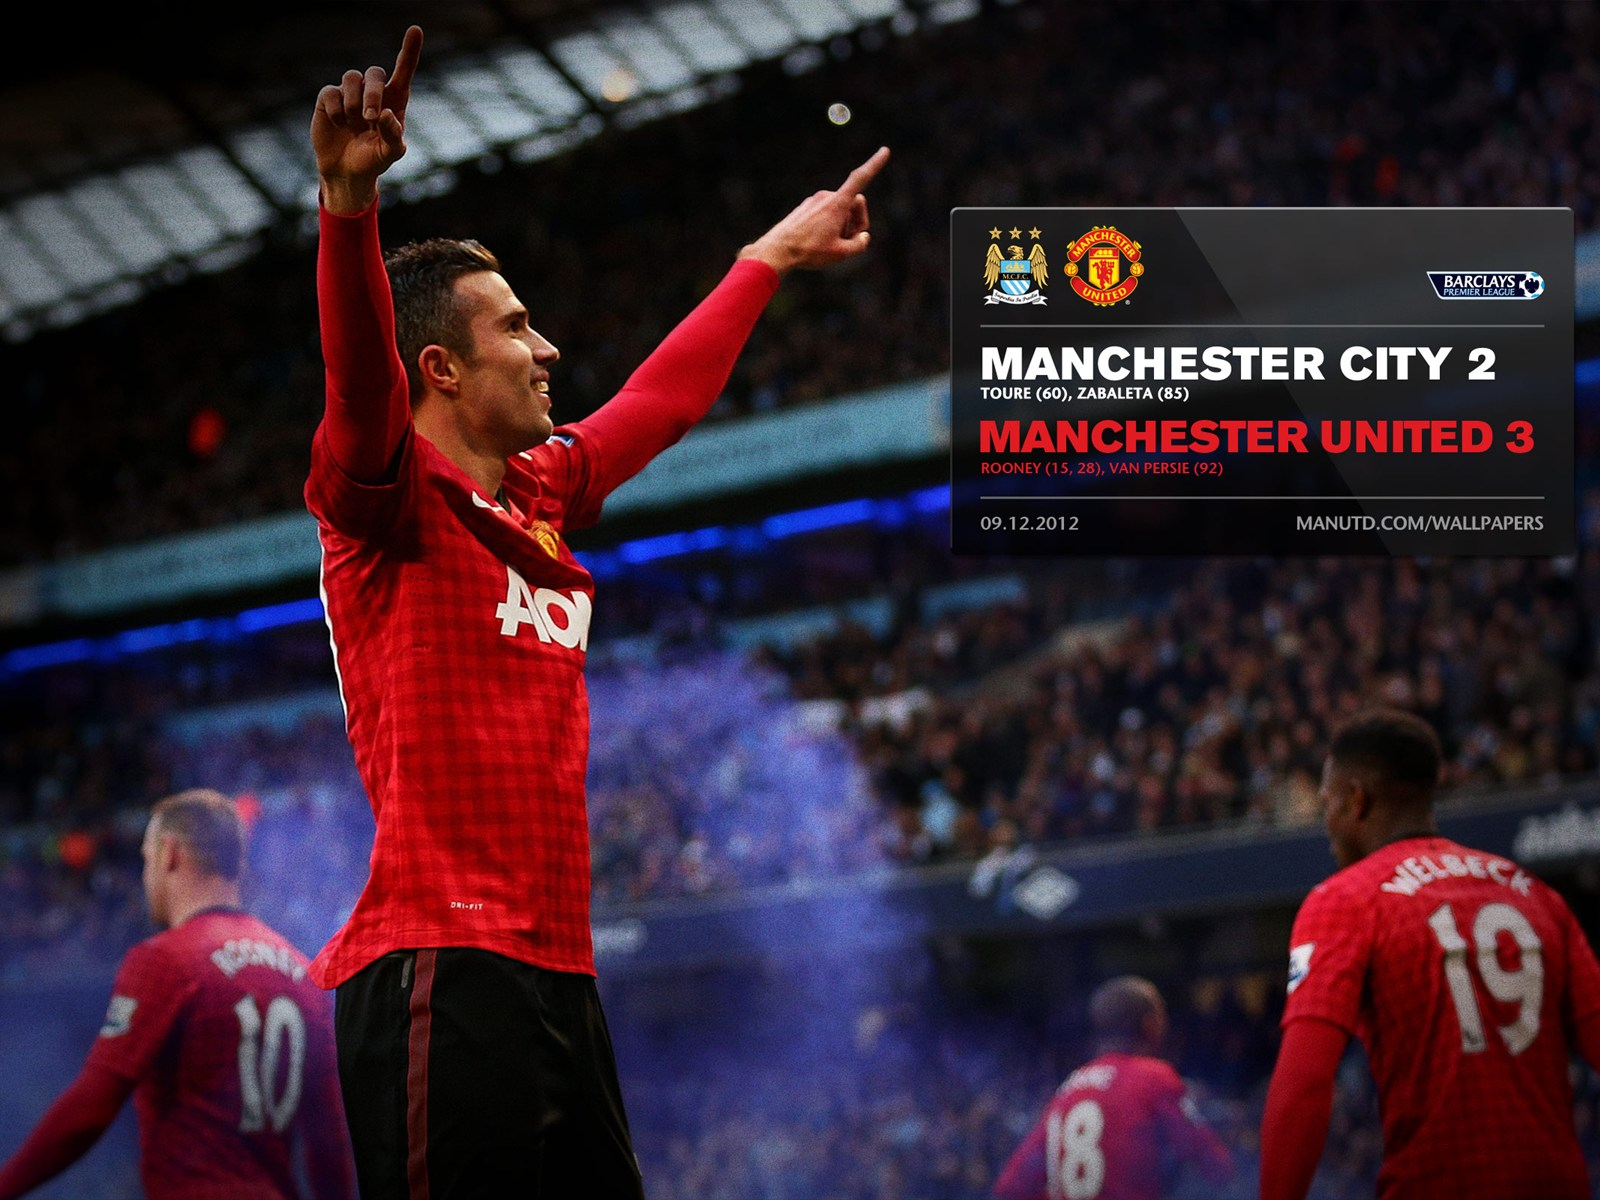 Manchester United Vs Manchester City: Pinal Score Wallpaper, Derby Manchester City Vs Manchester